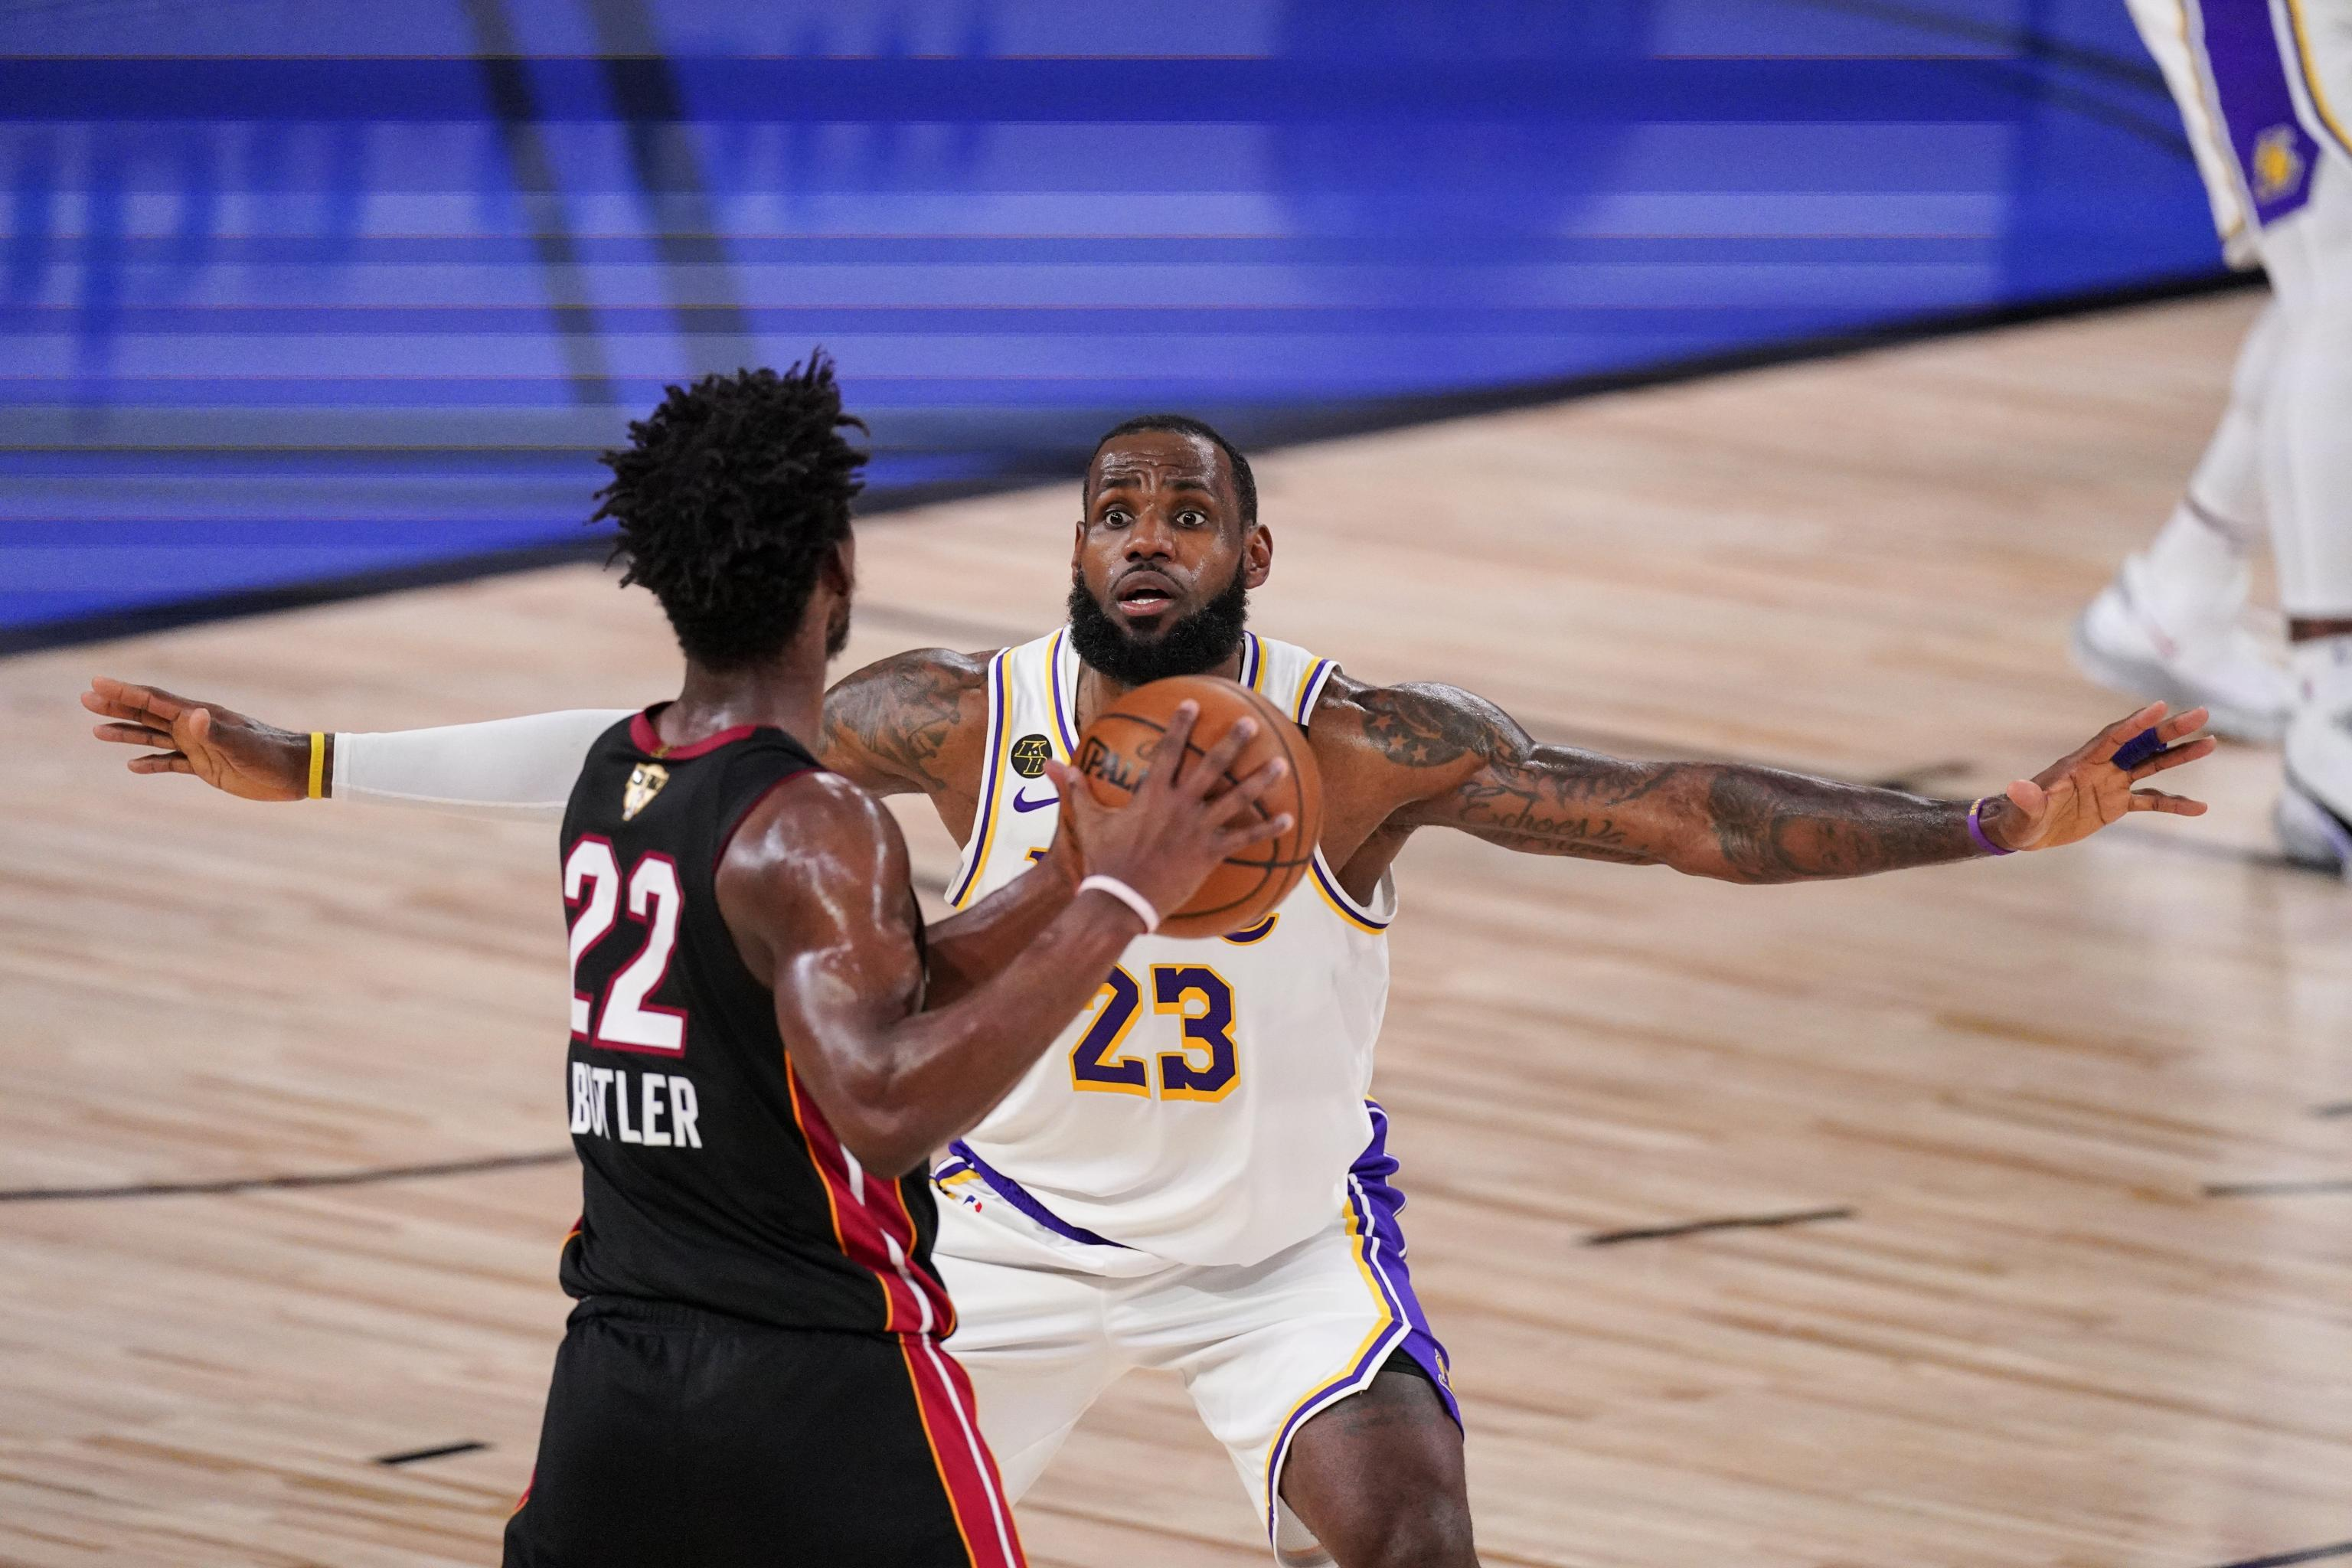 Nba Finals 2020 Lakers Vs Heat Game 6 Odds Props And Predictions Bleacher Report Latest News Videos And Highlights